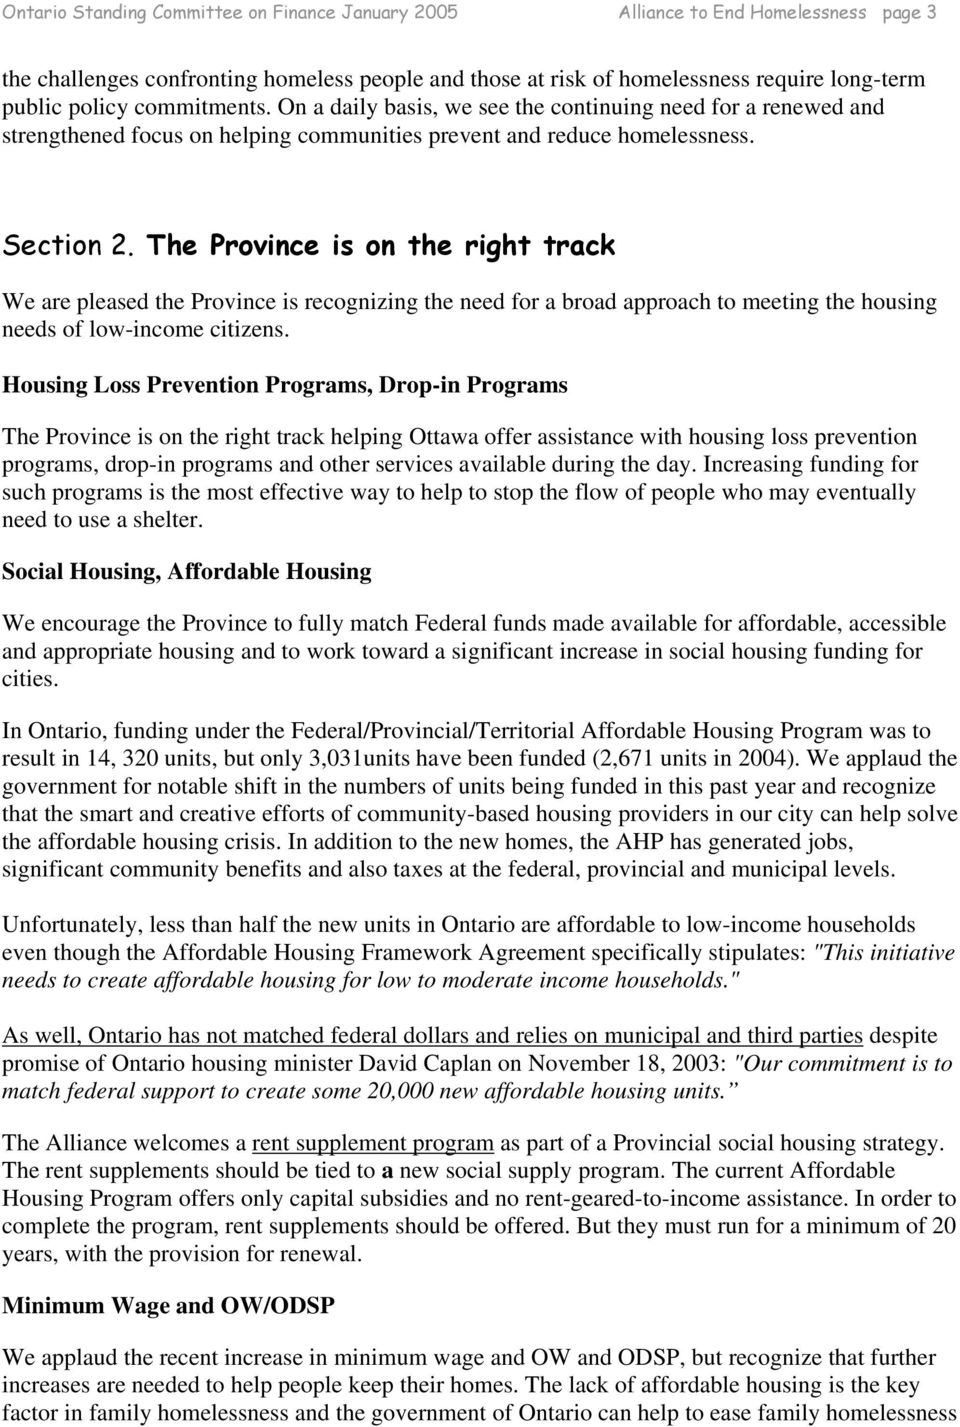 The Province is on the right track We are pleased the Province is recognizing the need for a broad approach to meeting the housing needs of low-income citizens.